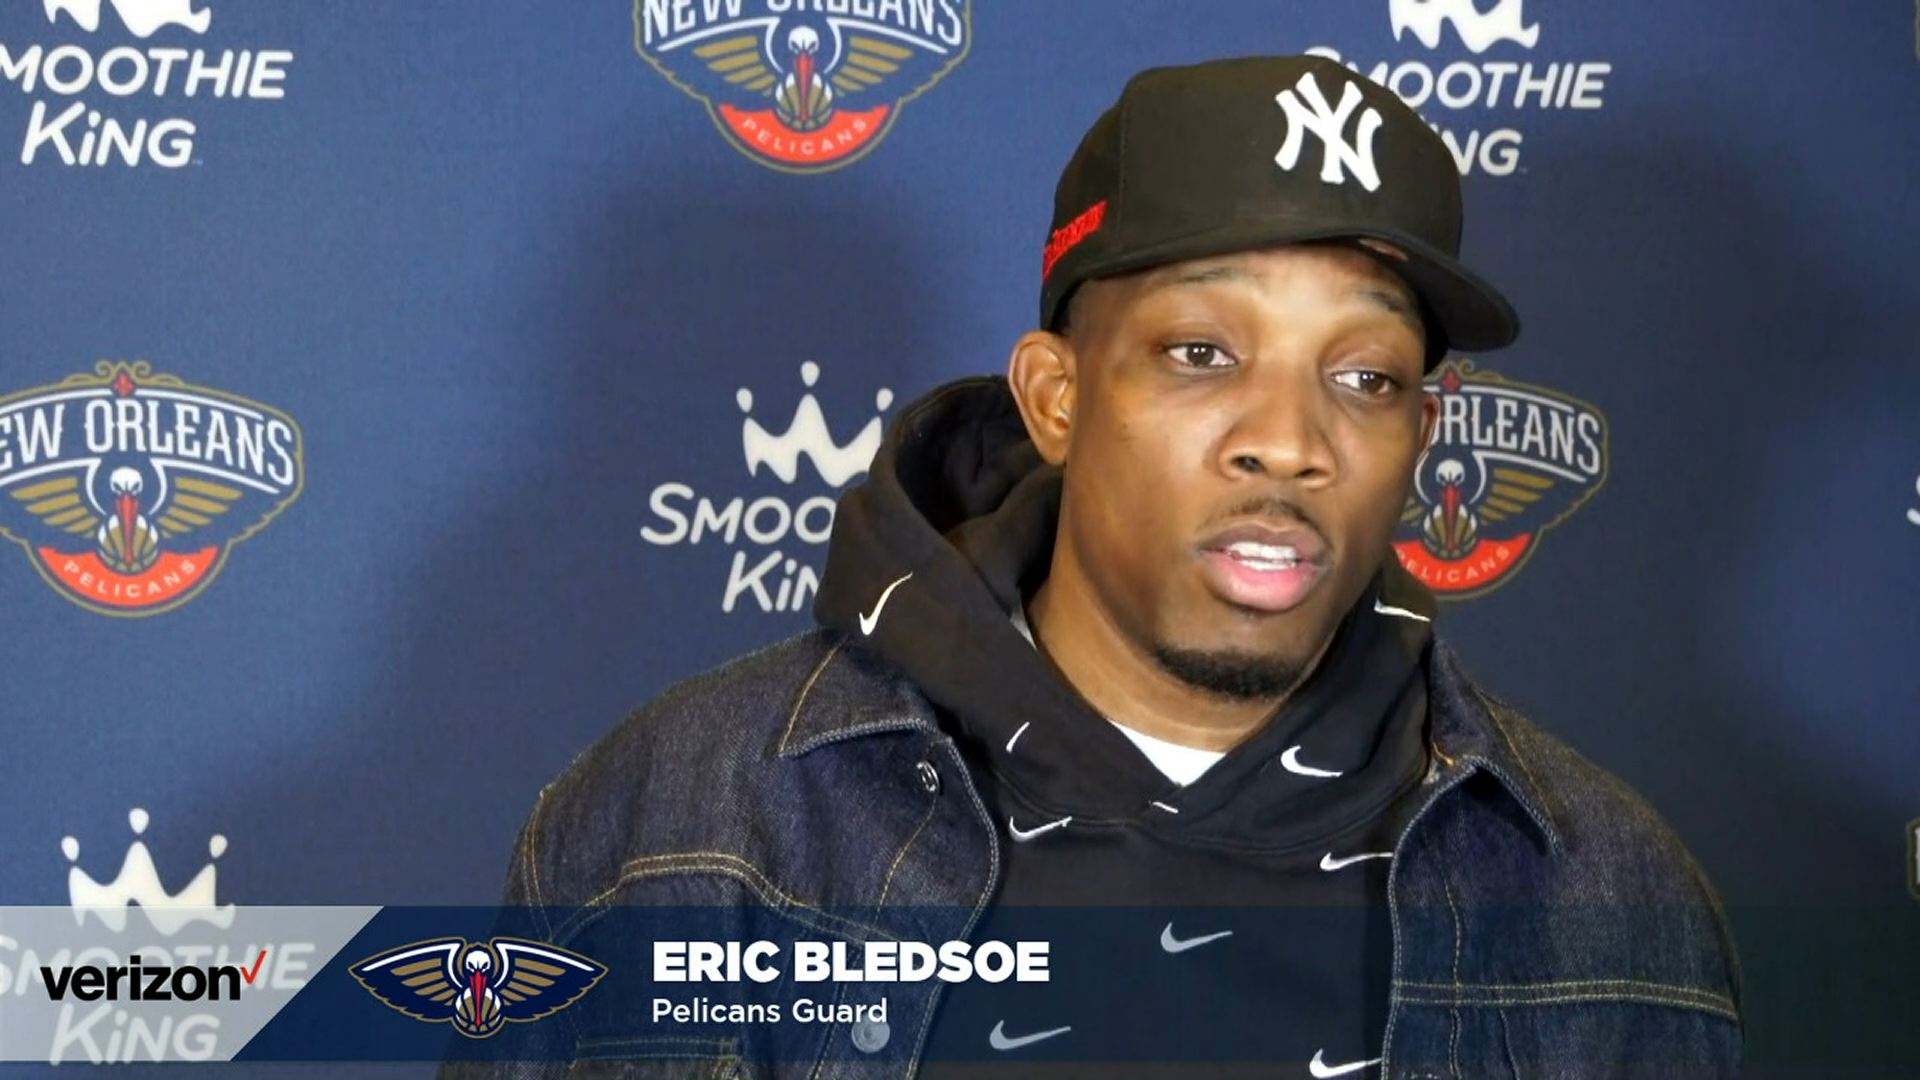 Pelicans-Wizards Postgame Interview: Eric Bledsoe 1-27-21